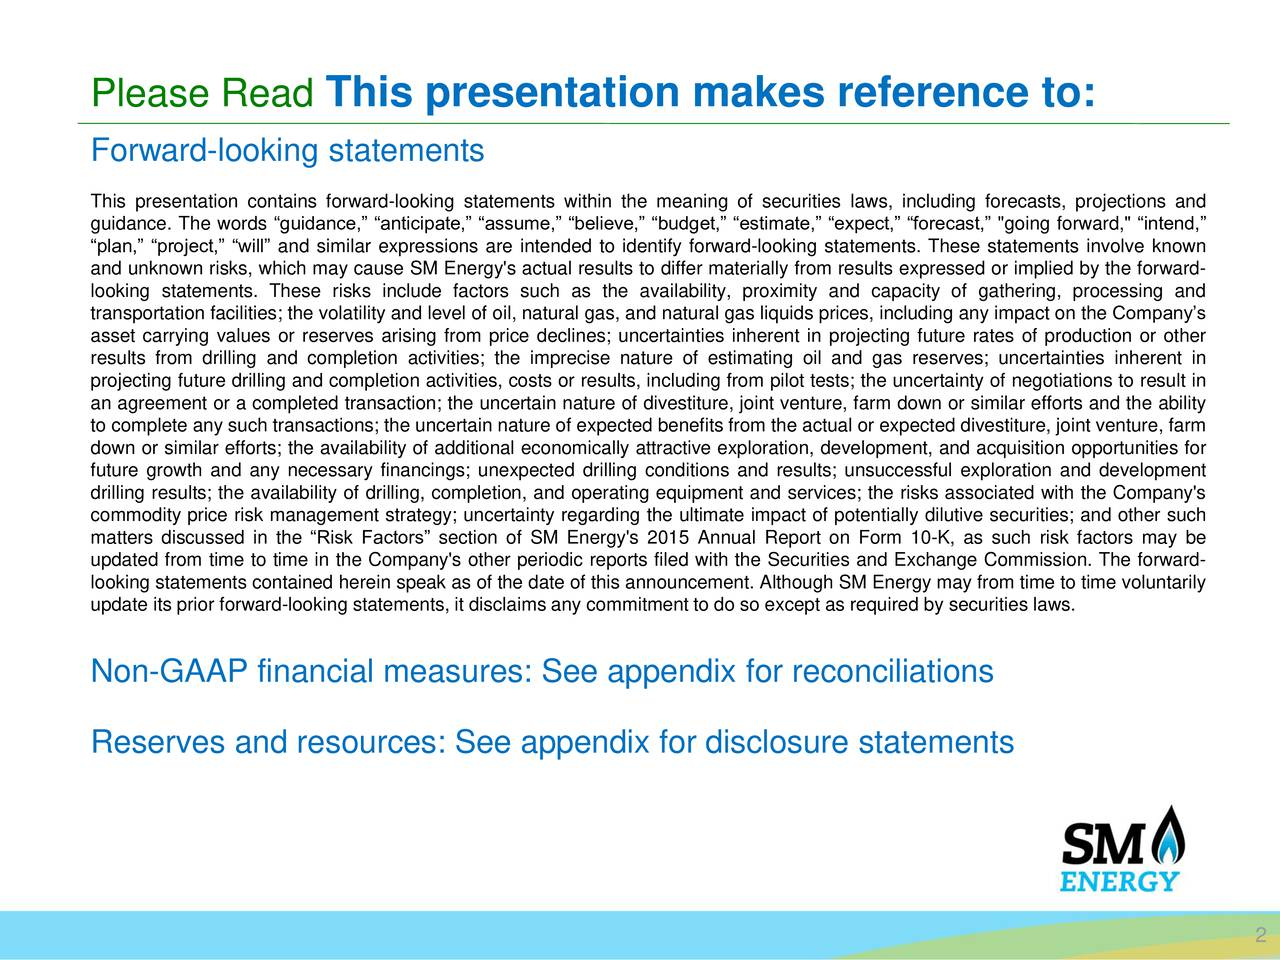 """Forward-looking statements This presentation contains forward-looking statements within the meaning of securities laws, including forecasts, projections and guidance. The words guidance, anticipate, assume, believe, budget, estimate, expect, forecast, """"going forward,"""" intend, plan, project, will and similar expressions are intended to identify forward-looking statements. These statements involve known and unknown risks, which may cause SM Energy's actual results to differ materially from results expressed or implied by the forward- looking statements. These risks include factors such as the availability, proximity and capacity of gathering, processing and transportation facilities; the volatility and level of oil, natural gas, and natural gas liquids prices, including any impact on the Companys asset carrying values or reserves arising from price declines; uncertainties inherent in projecting future rates of production or other results from drilling and completion activities; the imprecise nature of estimating oil and gas reserves; uncertainties inherent in projecting future drilling and completion activities, costs or results, including from pilot tests; the uncertainty of negotiations to result in an agreement or a completed transaction; the uncertain nature of divestiture, joint venture, farm down or similar efforts and the ability to complete any such transactions; the uncertain nature of expected benefits from the actual or expected divestiture, joint venture, farm down or similar efforts; the availability of additional economically attractive exploration, development, and acquisition opportunities for future growth and any necessary financings; unexpected drilling conditions and results; unsuccessful exploration and development drilling results; the availability of drilling, completion, and operating equipment and services; the risks associated with the Company's commodity price risk management strategy; uncertainty regarding the ultimate impact of potentially"""